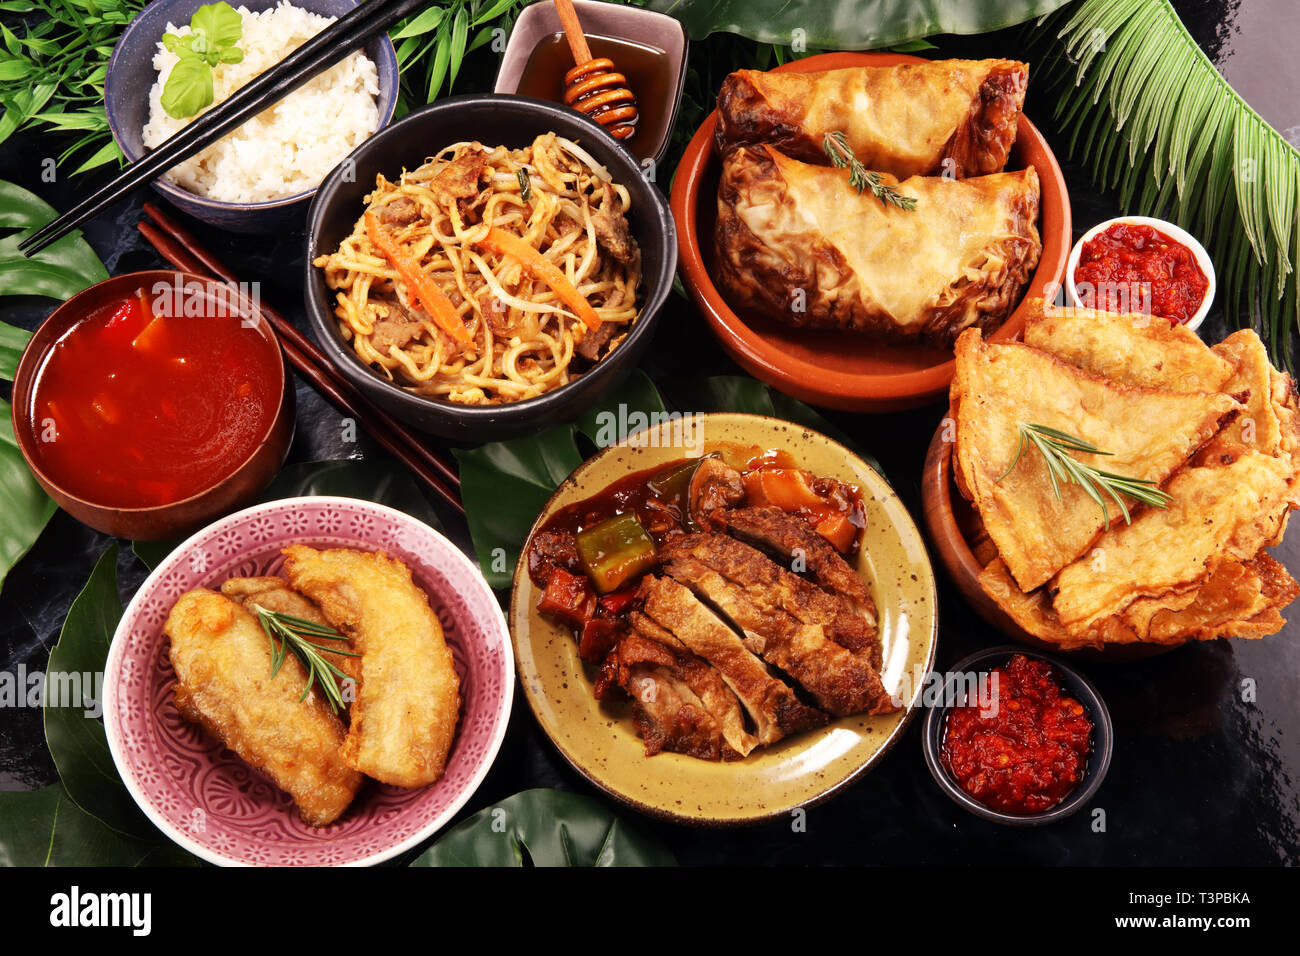 Assorted Chinese Food Set Chinese Noodles Fried Rice Peking Duck Dim Sum Spring Rolls Famous Chinese Cuisine Dishes On Table Chinese Restaurant Stock Photo Alamy